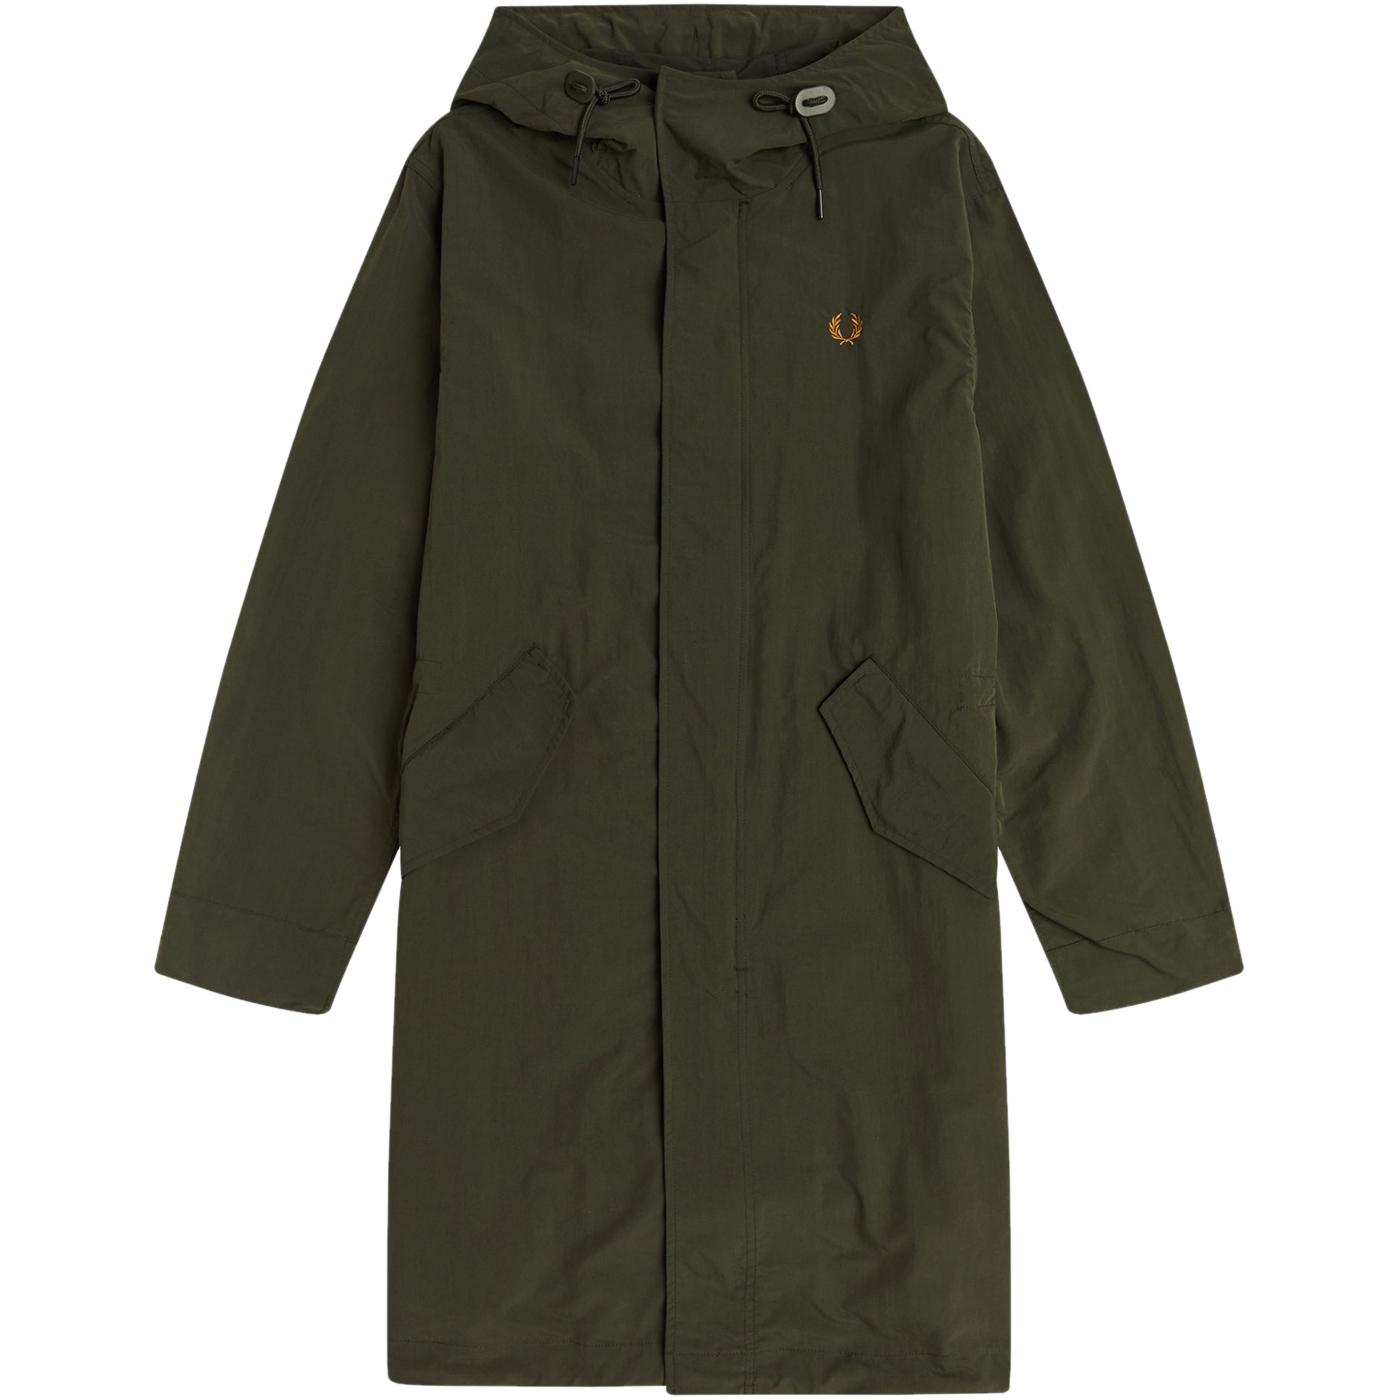 FRED PERRY Mod Shell Fishtail Parka Jacket (HG)